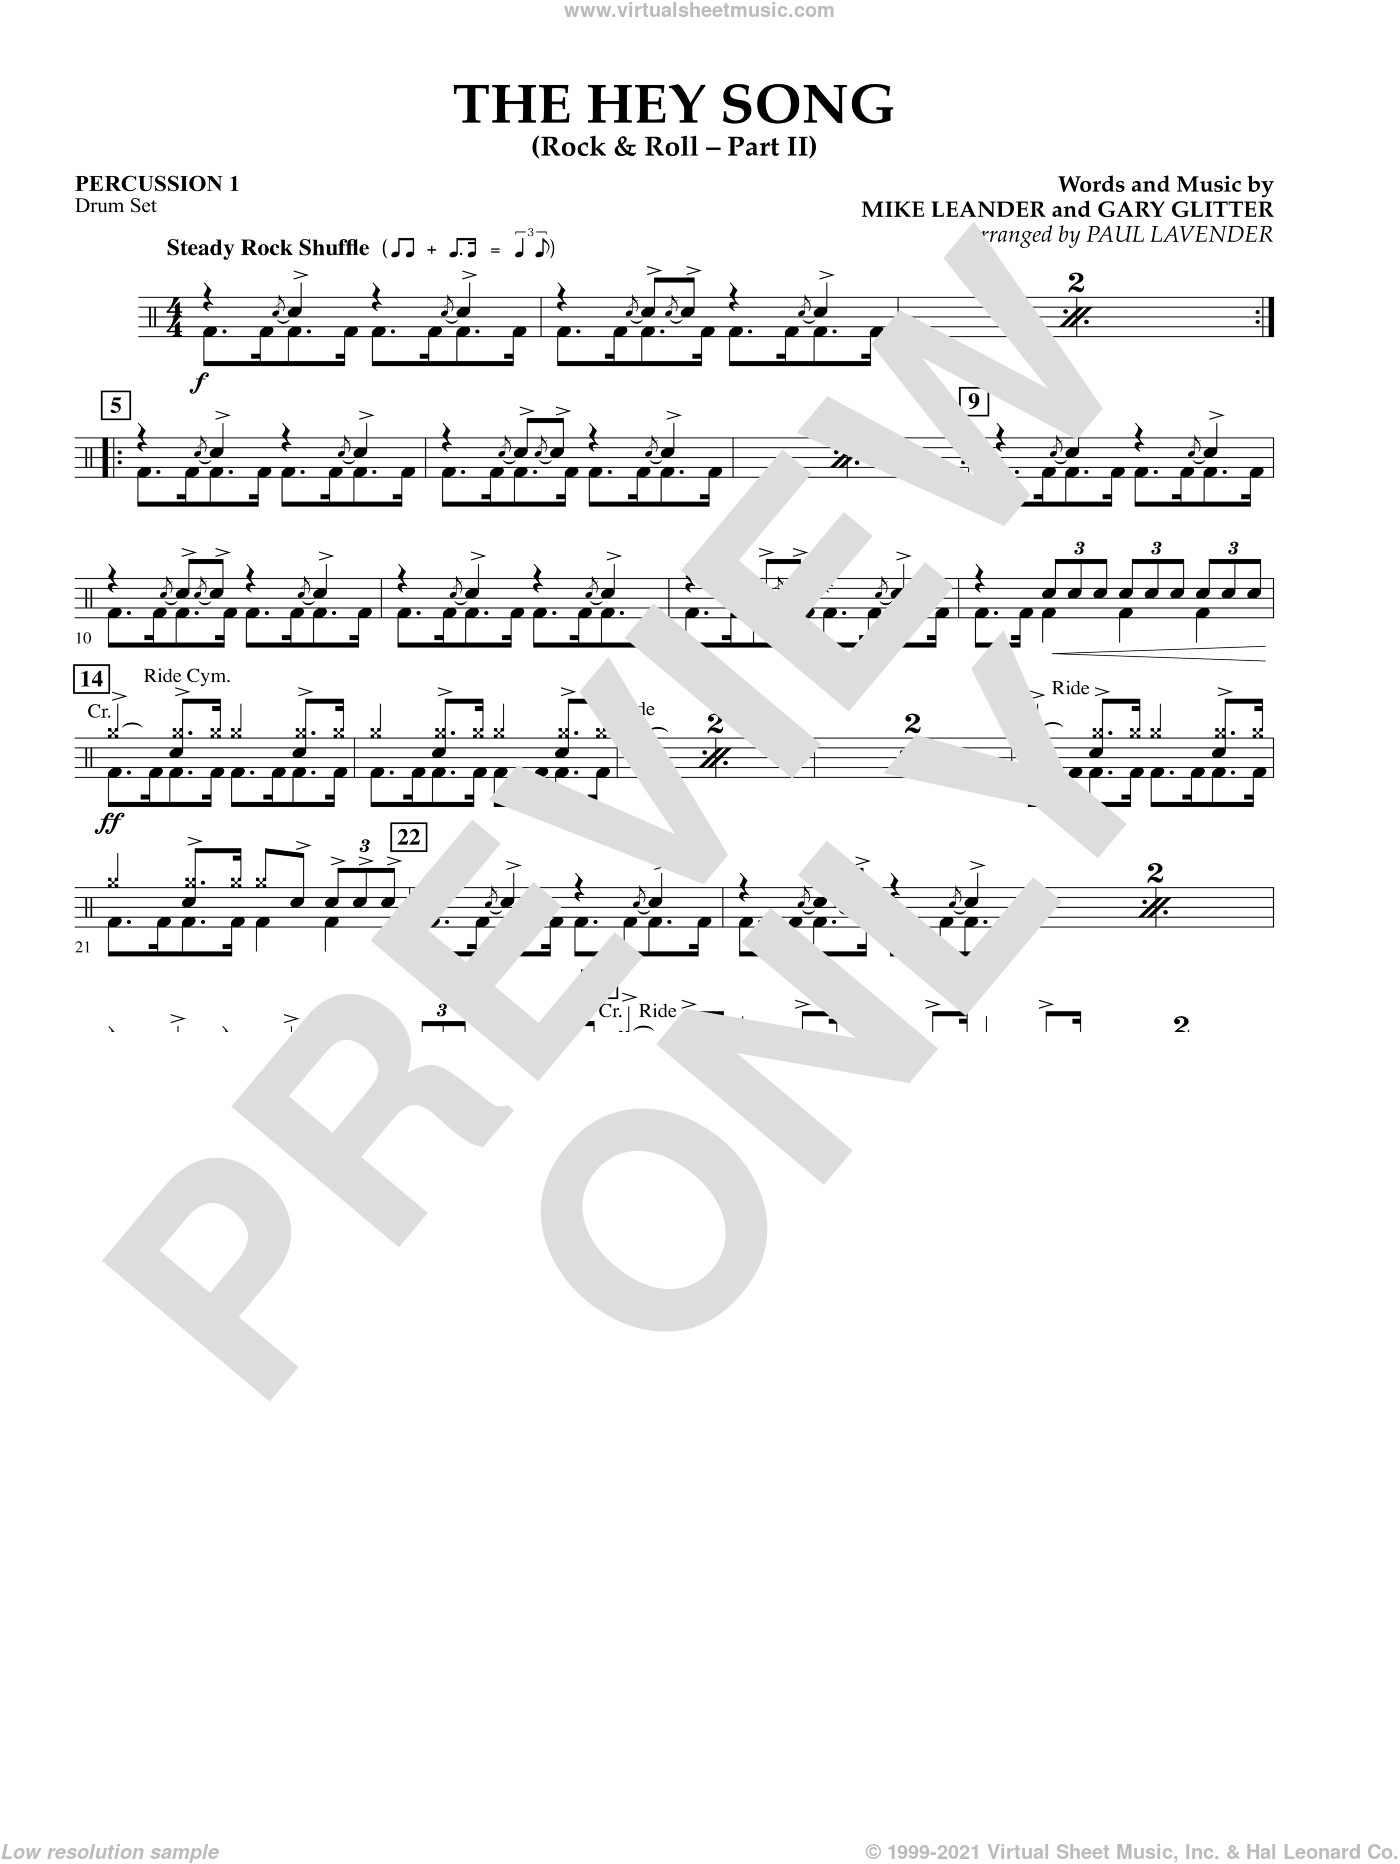 The Hey Song (Rock and Roll Part II) (Flex-Band) sheet music for concert band (percussion 1) by Gary Glitter, Paul Lavender and Mike Leander, intermediate skill level